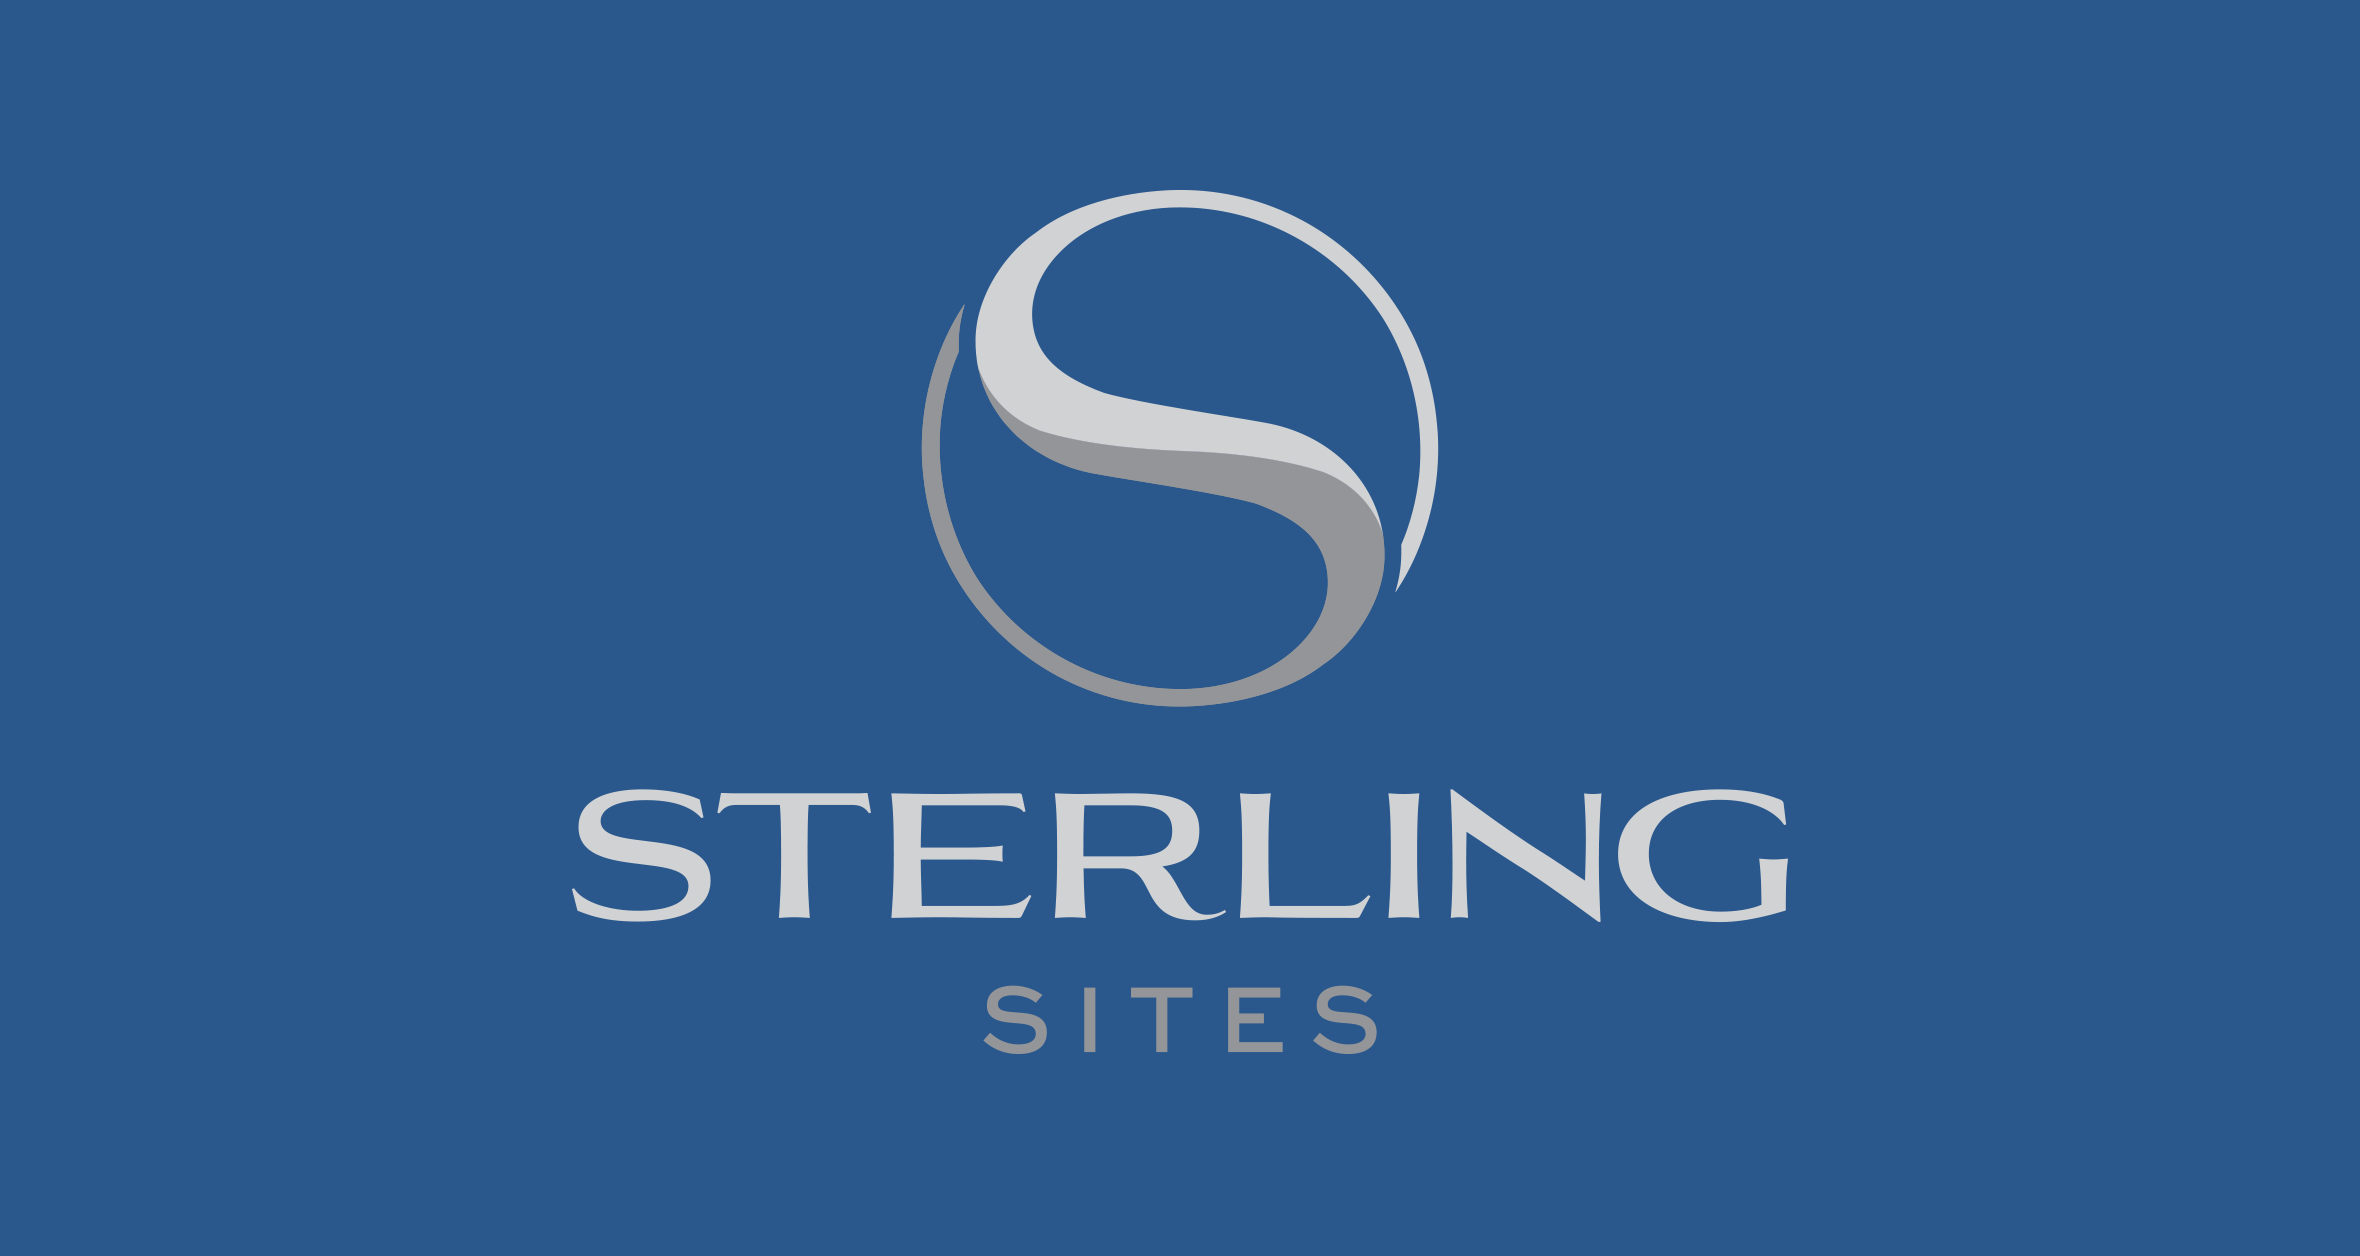 port-sterling-sites-full-width-2thirds-tall